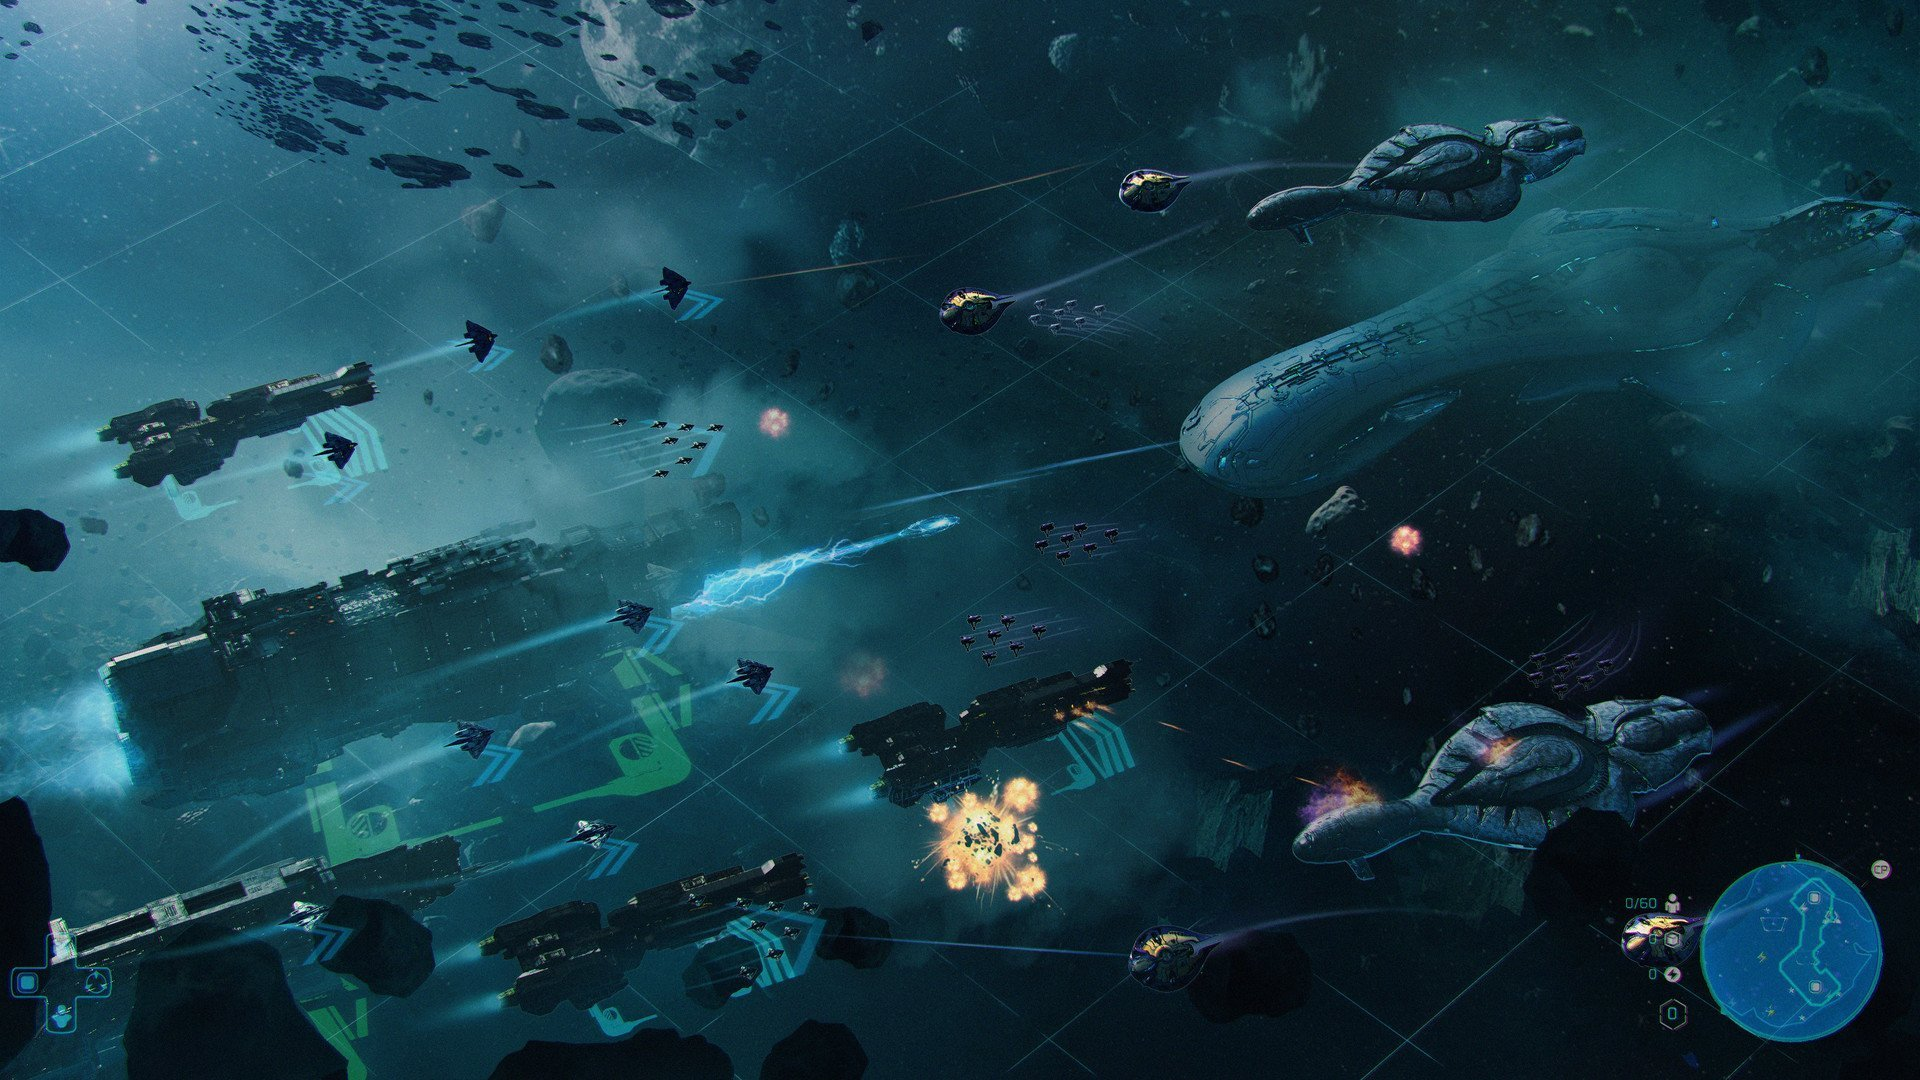 halo wars battles wallpaper - photo #20